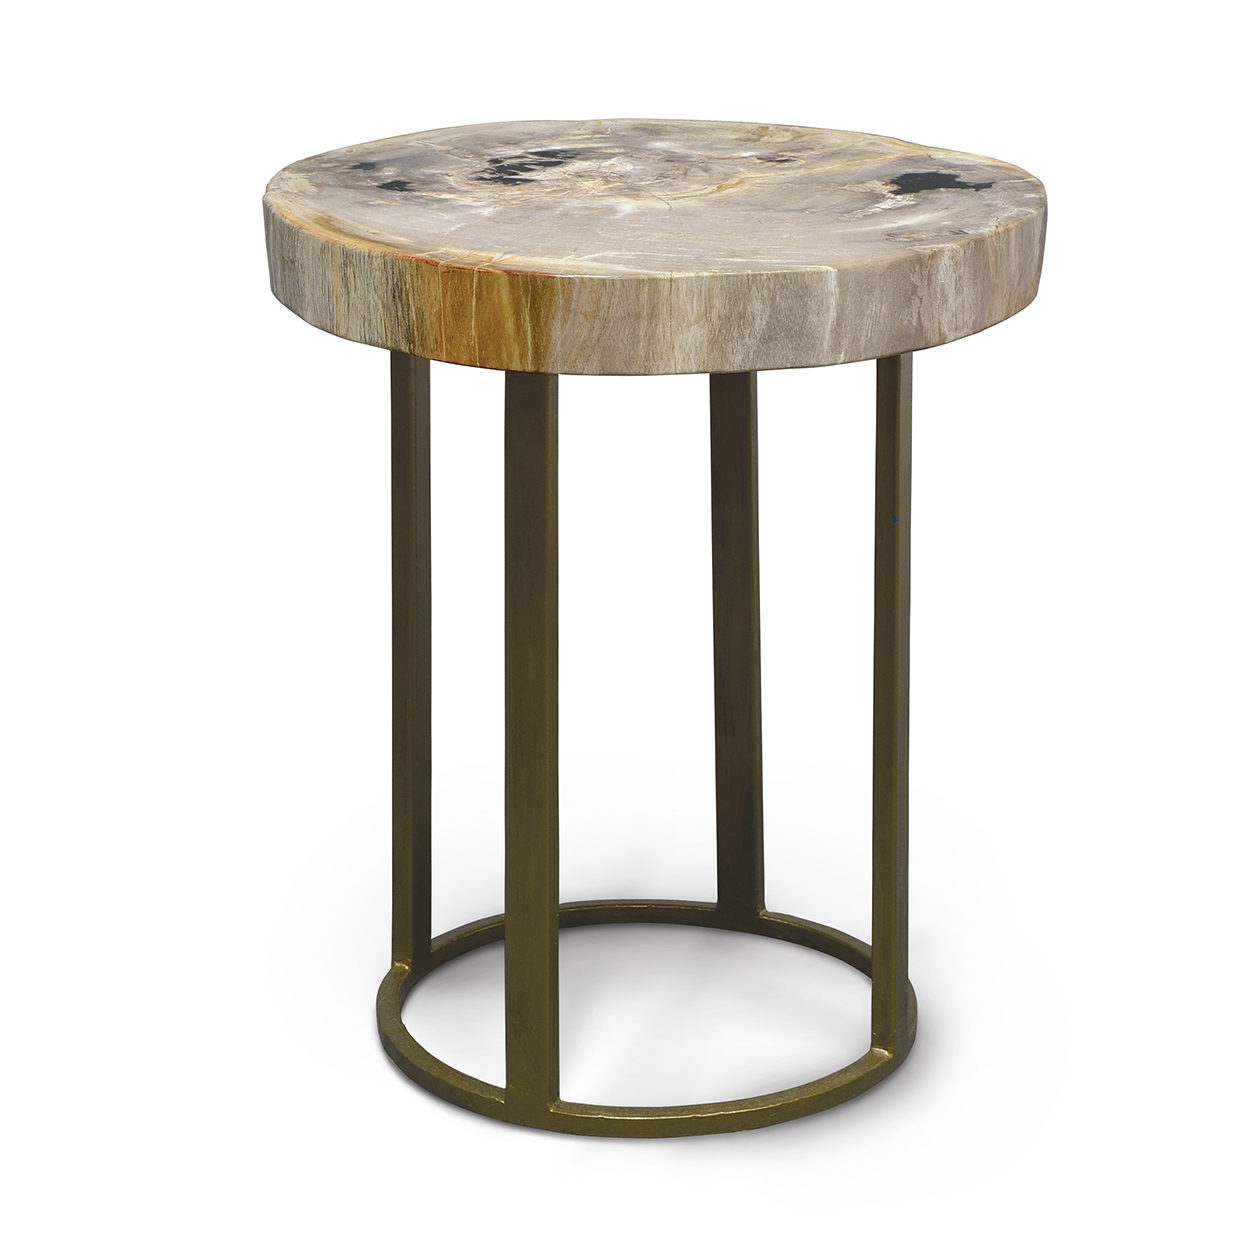 palecek petrified wood accent table slice with round iron base vintage retro dining and chairs wine cabinet lighting seattle pier one mirrored end bronze glass side narrow console